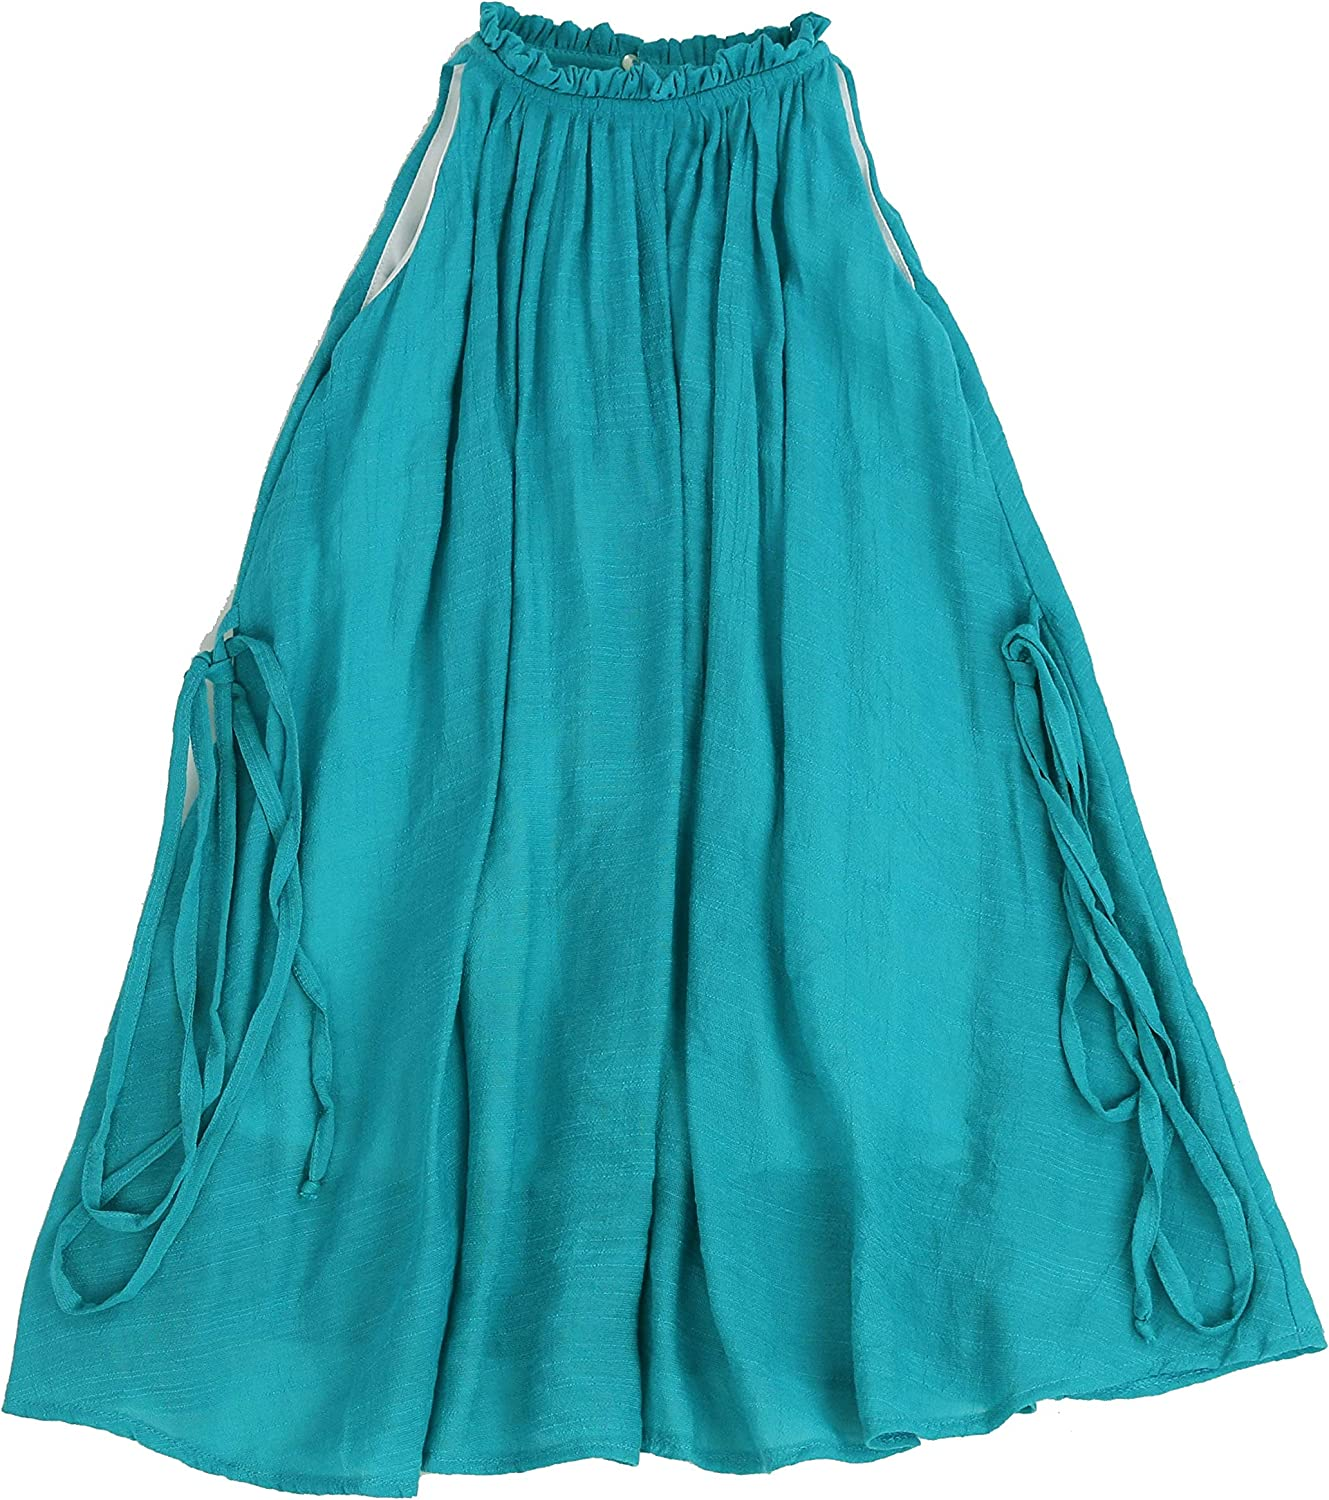 Soft Cotton Ruffled Mock Neck Chic Dress Toddlers and Girls 2T-7//8 LELEFORKIDS